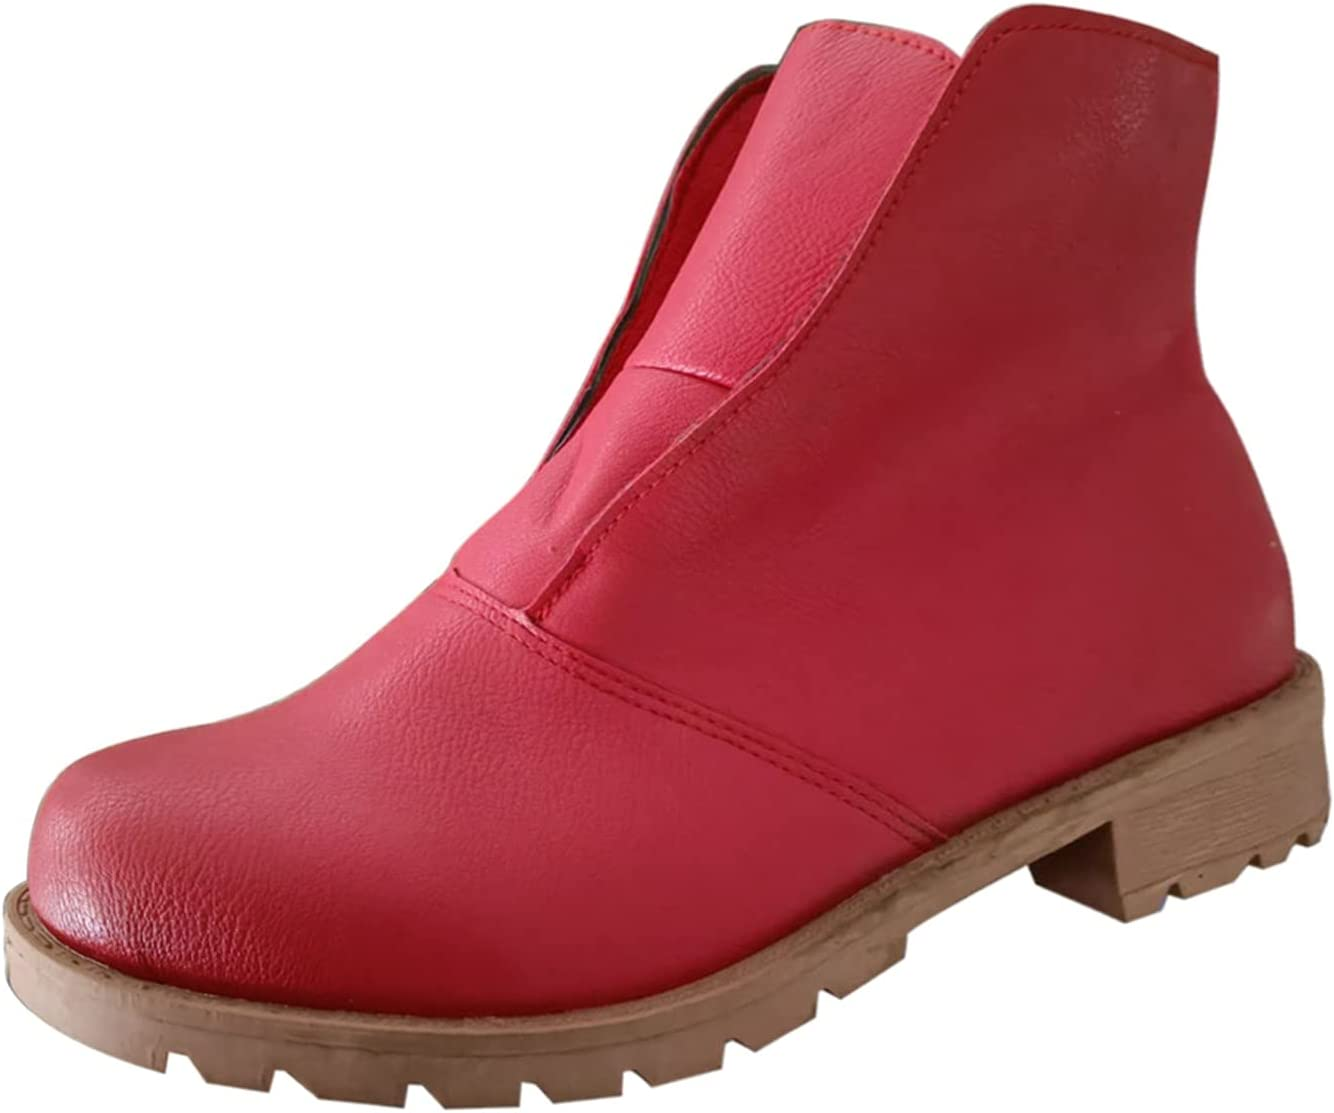 Women's Ankle Booties Fashion Mid Calf Boots Casual High Boots Chunky Thick Low Heels Retro Combat Boots Short Boots Autumn Winter Cowboy Boots Comfortable Shoes Sneakers (Red, 9)